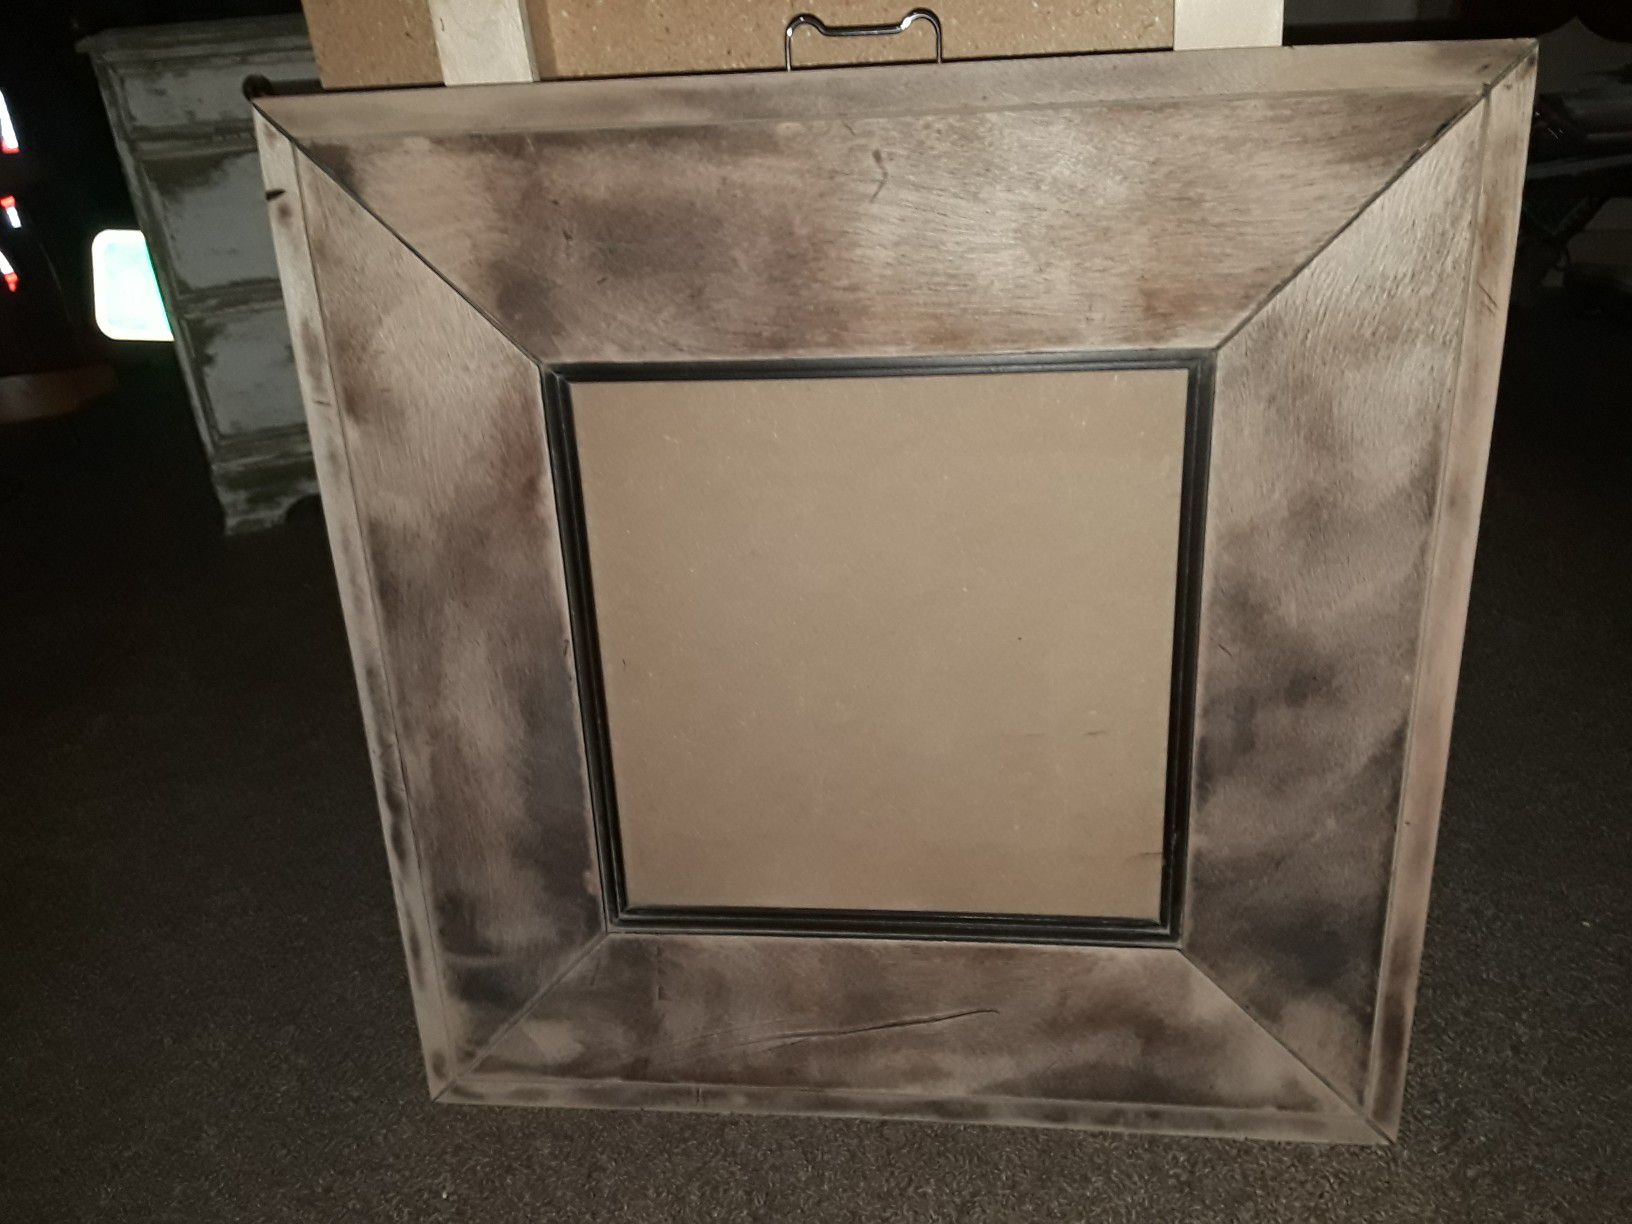 Solid wood frame for picture or mirror